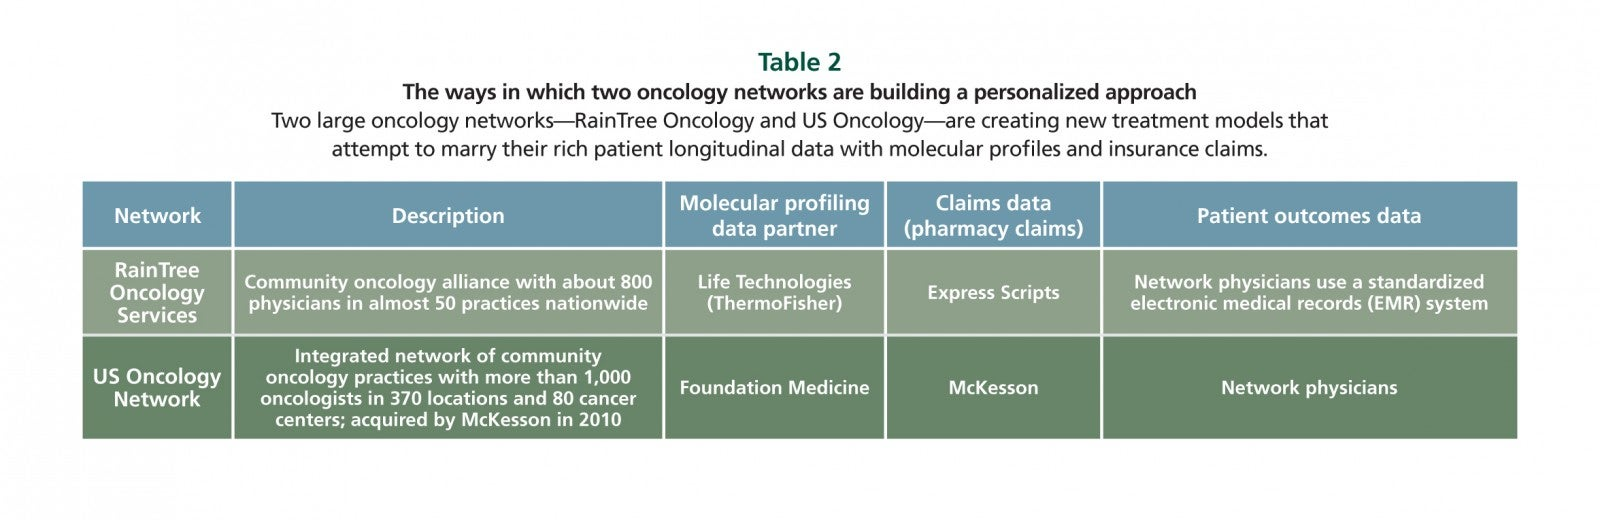 LEK_1624_PersonalizedOncology_Table2.jpg